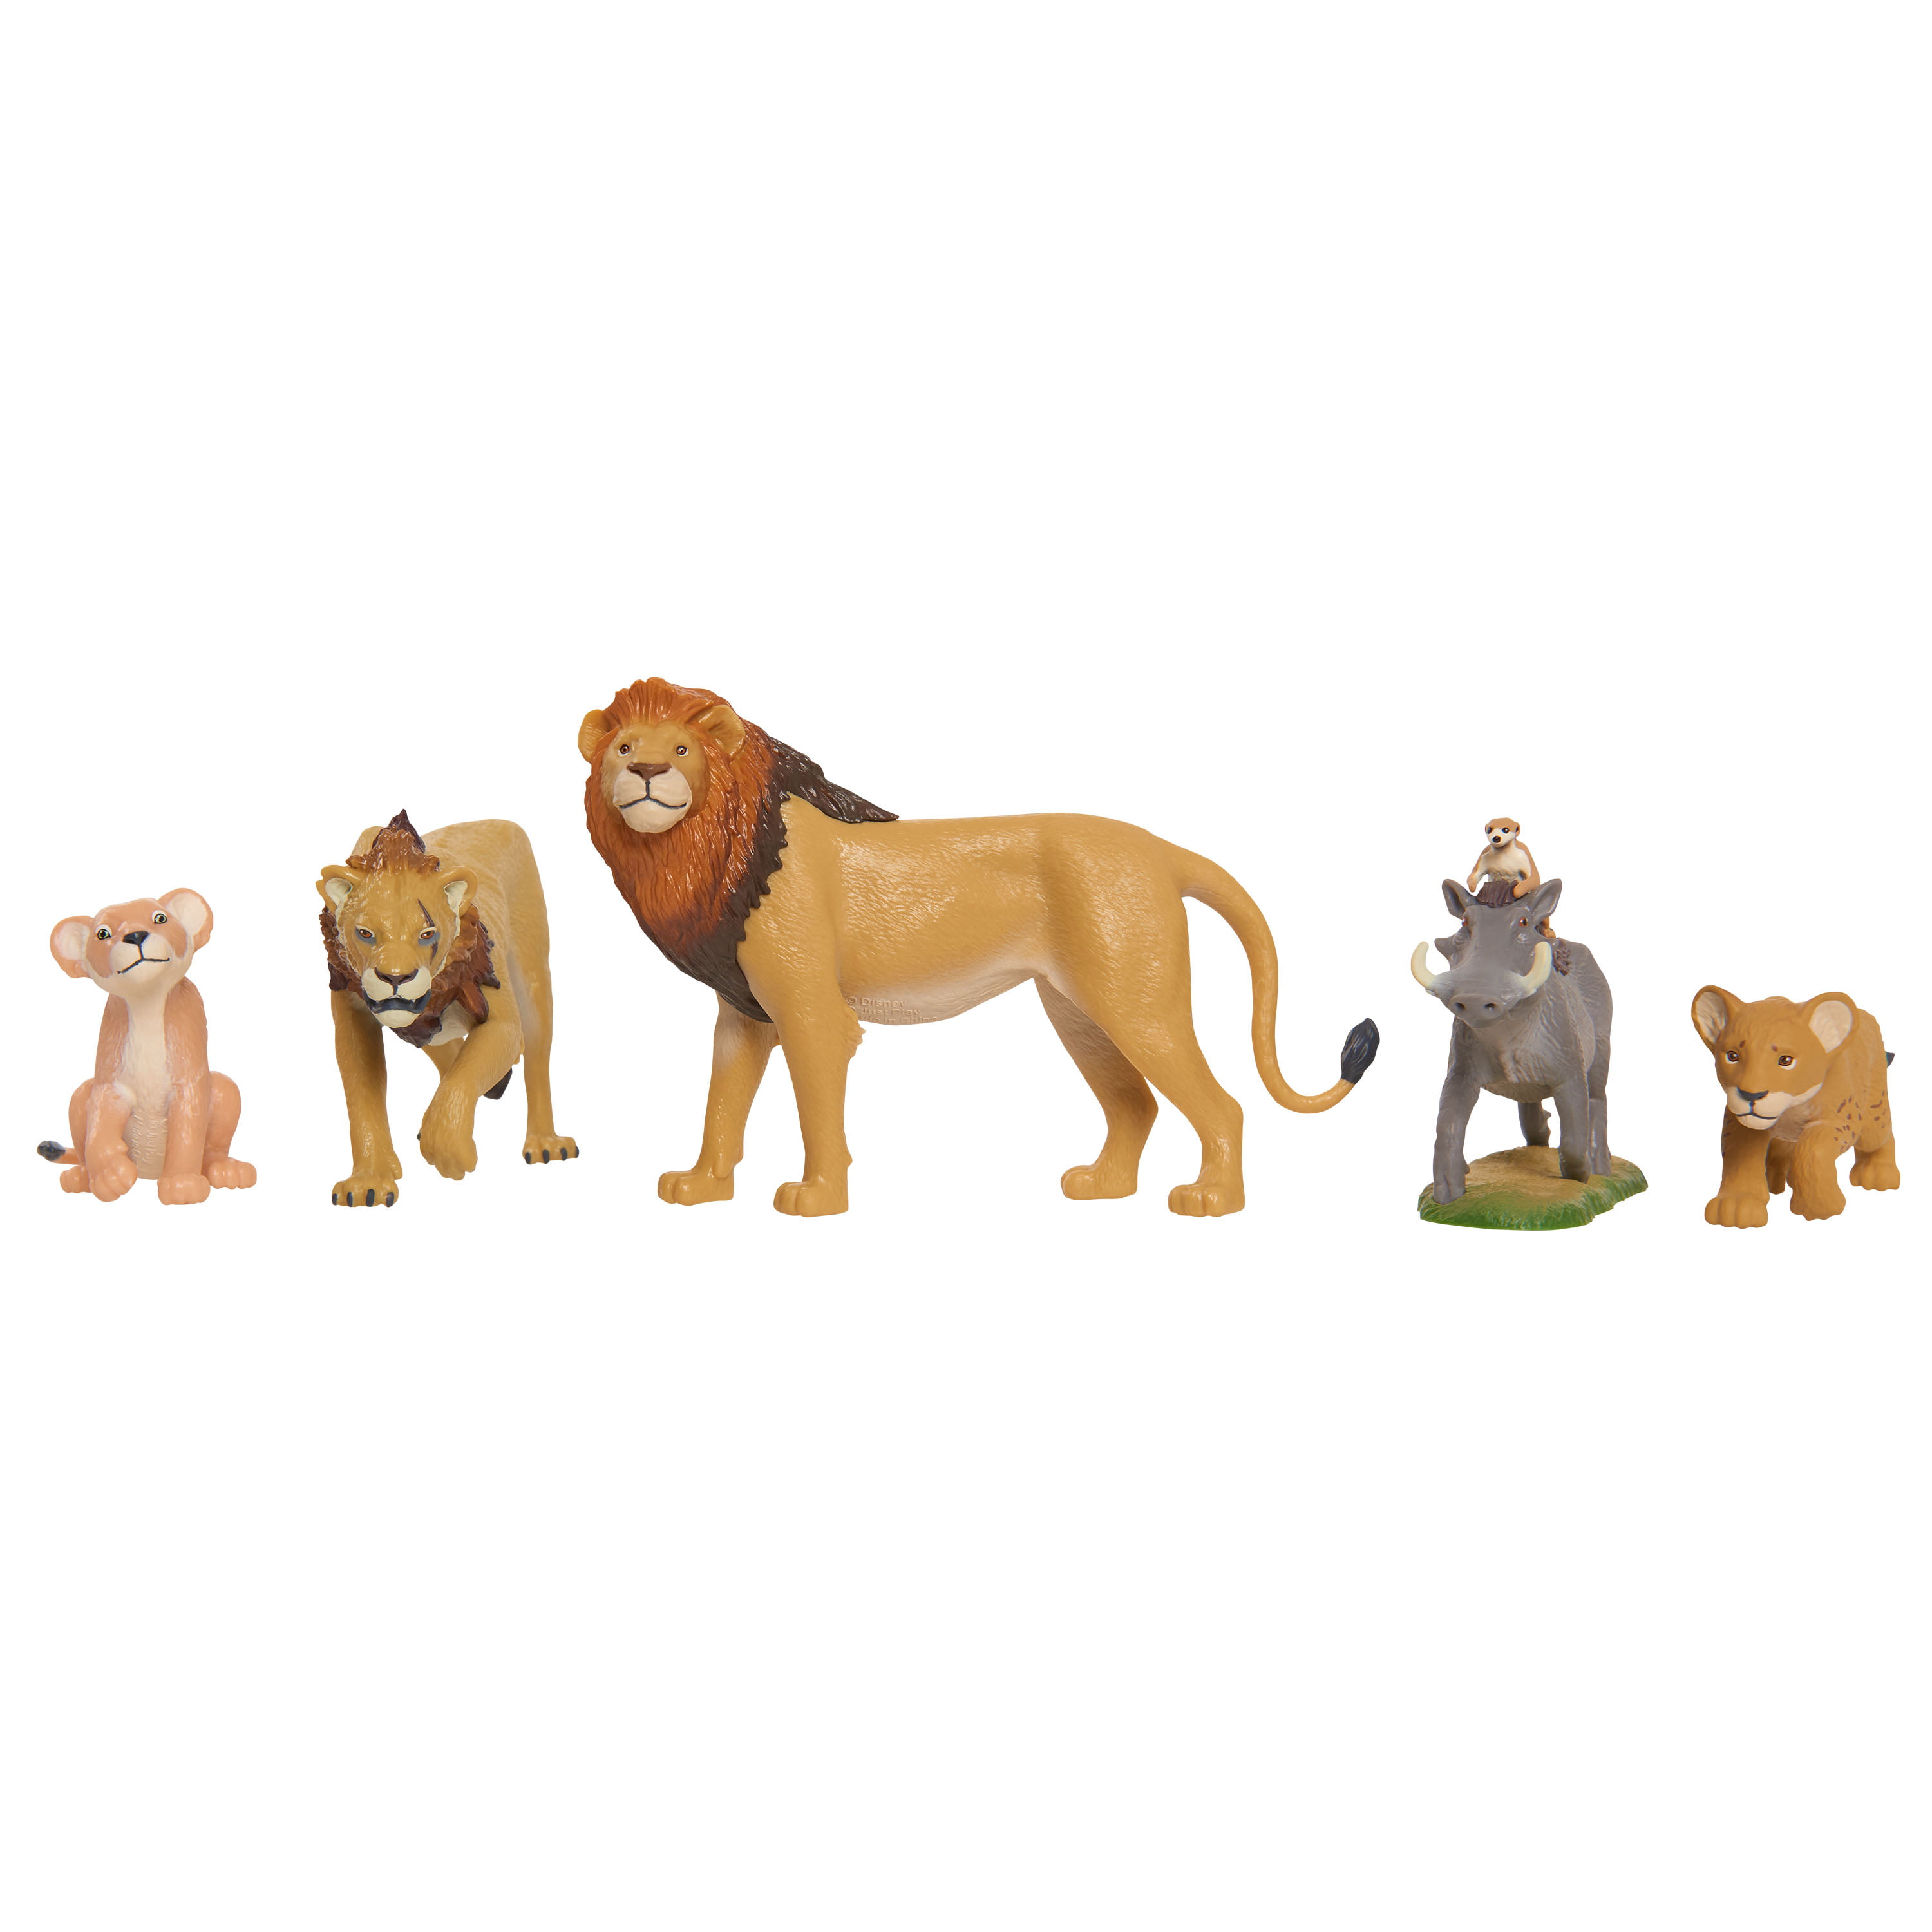 Disney's The Lion King Collector Figure Set - 5 Piece